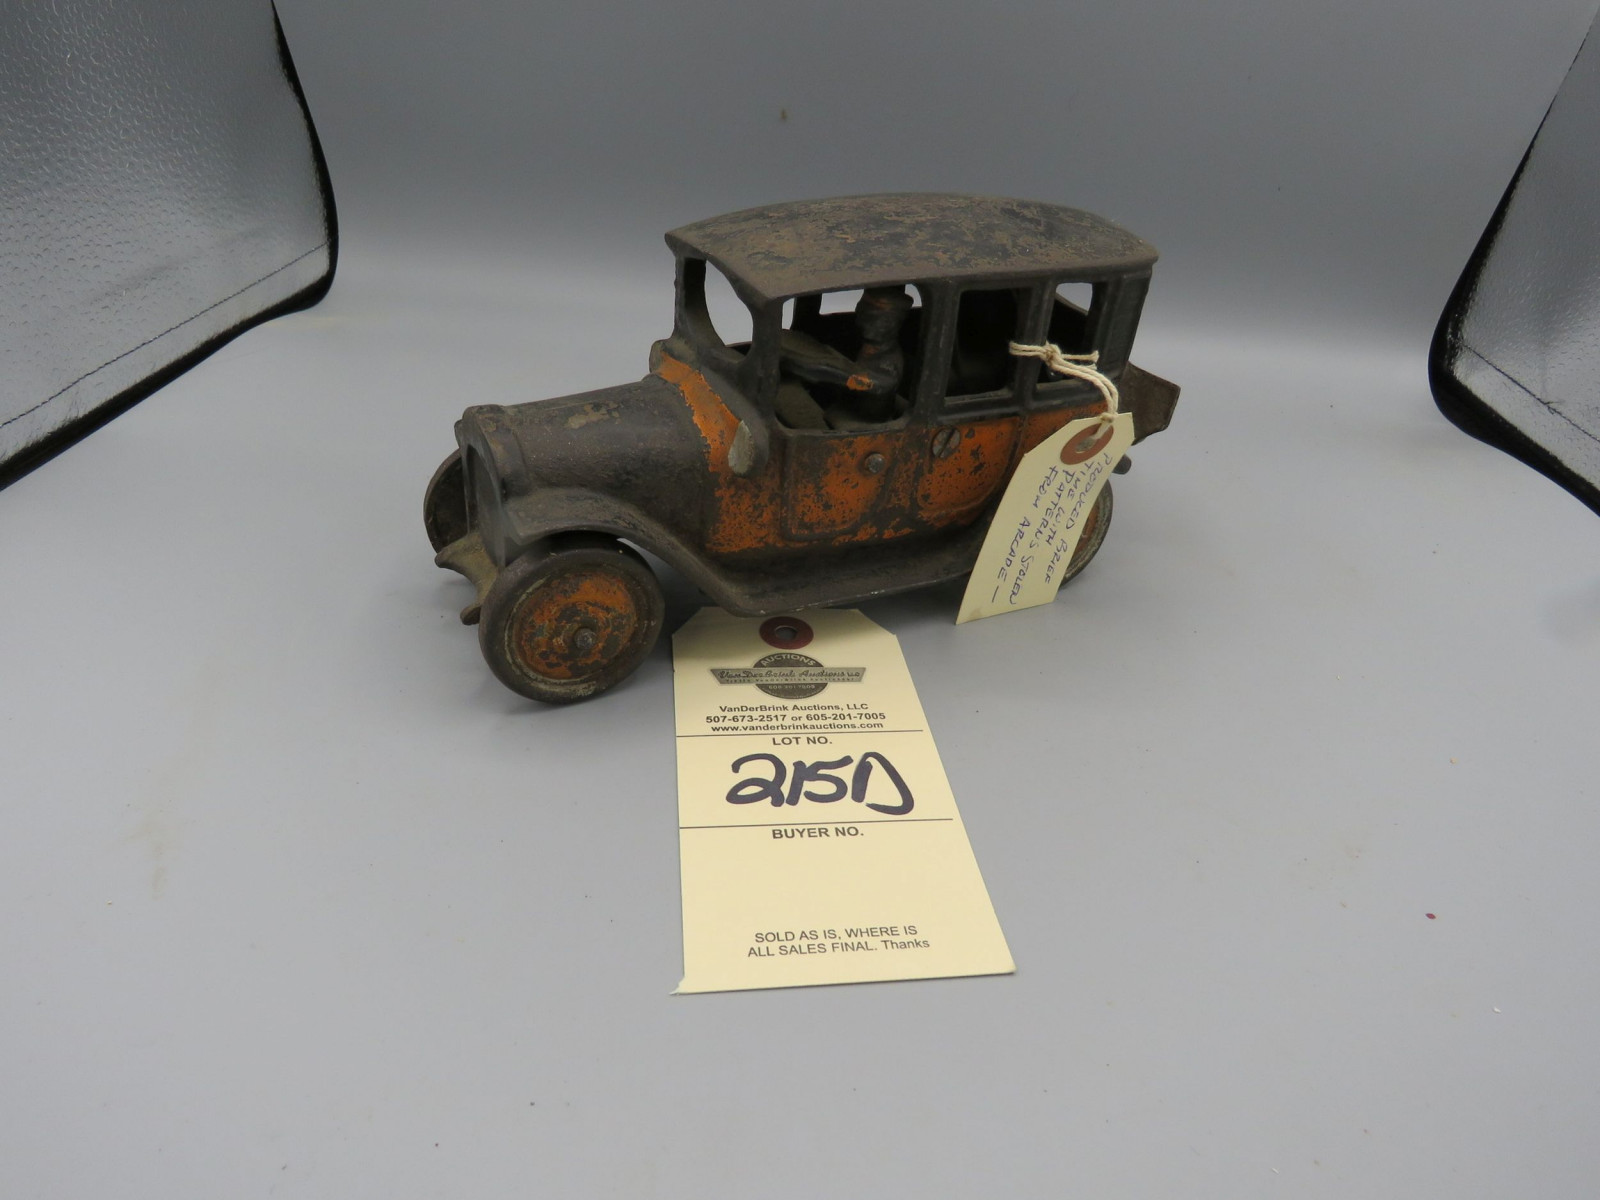 1920's Friedag Cast Iron Sedan believed to be limited production Approx. 8 inches - Image 1